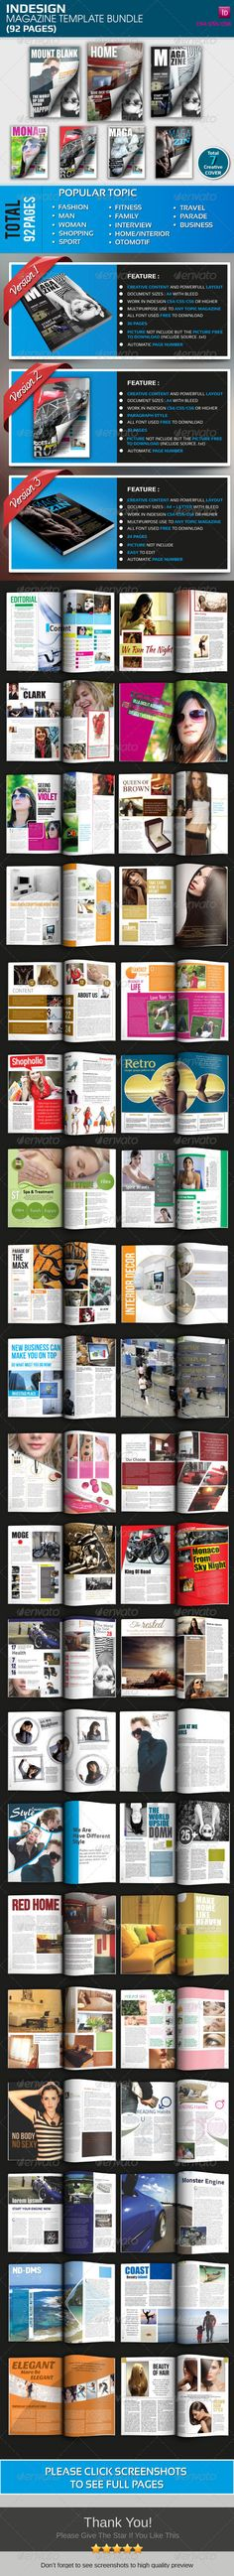 Best Indesign Magazine Template Bundle (92 Pages) #GraphicRiver The Best InDesign Magazine Template Bundle (92 pages) 92 full creative page layout, with a sleek design and attractive colors make this a very professional magazine, this magazine is perfect for popular topics such as women's magazines, fashion magazines, home / interior magazines, sports magazines, technology magazines, food magazines , and other popular topics Version 1 : graphicriver /item/magazine-template/3206819 Version 2…